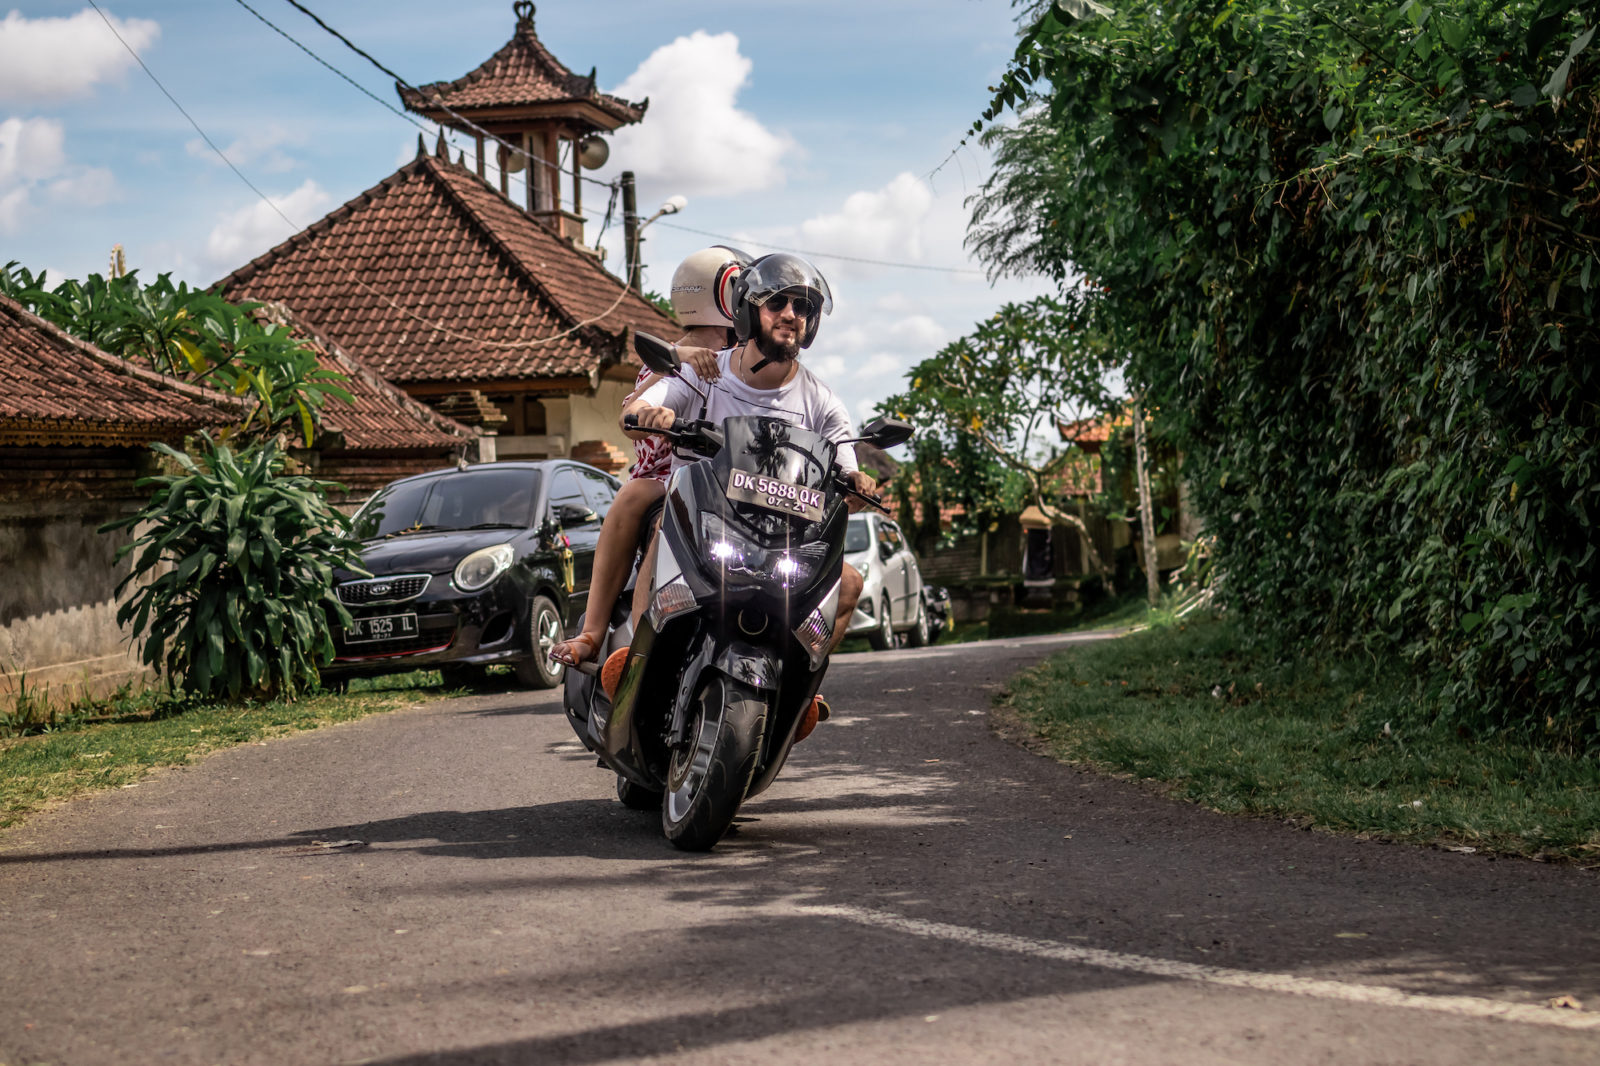 Rent a bike or scooter on Bali - Bikago